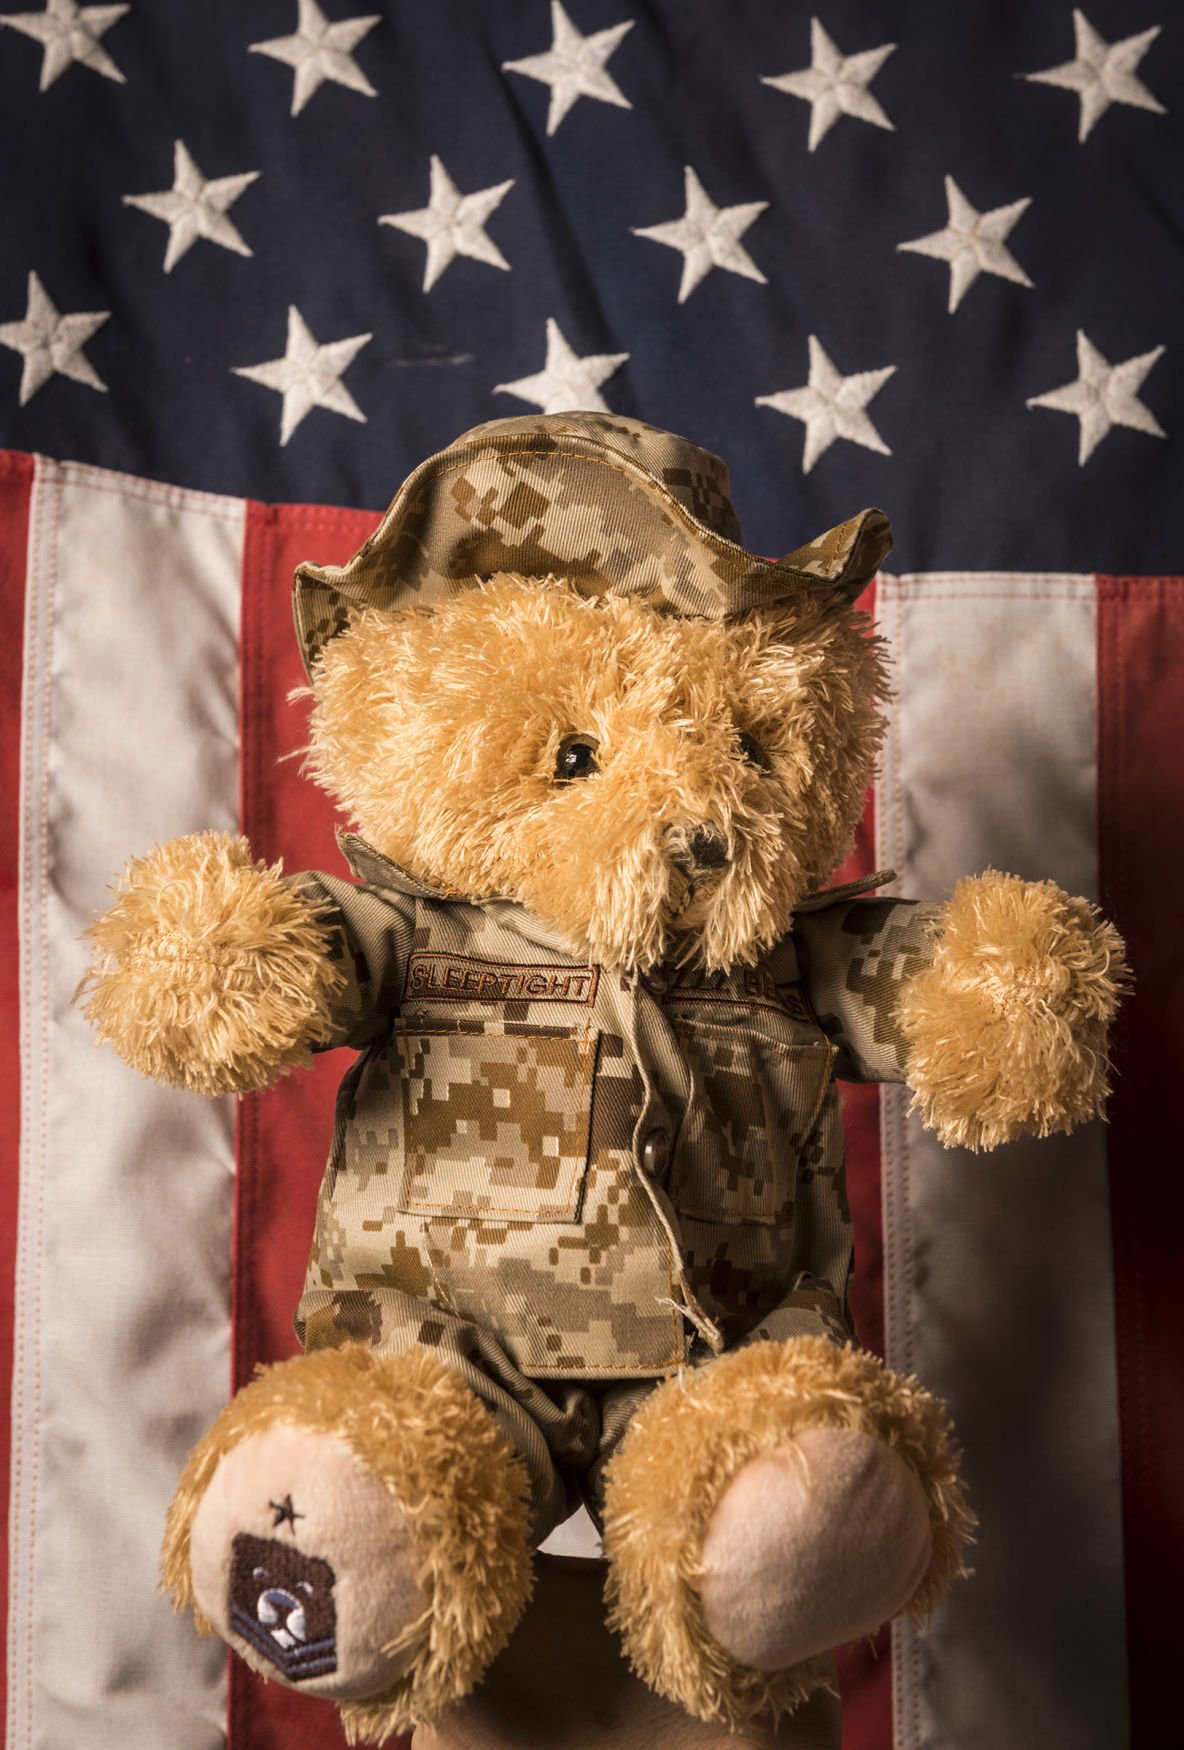 2b2485c28 ZZZ Bears deploys teddy bears to protect children from bad dreams and  monsters under the bed